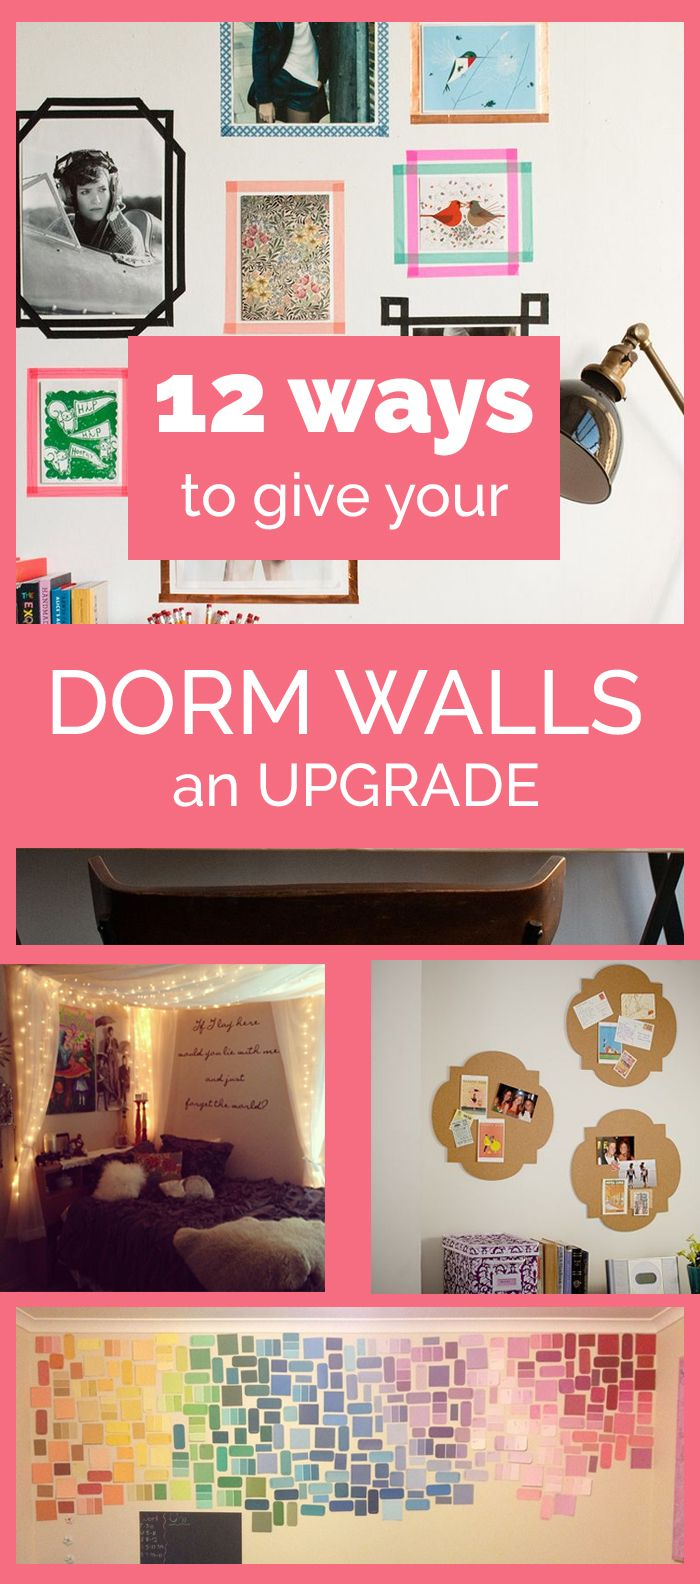 12 Ways to Give Your Dorm Walls an Upgrade - Make your college room feel more like home with these dorm decor tips